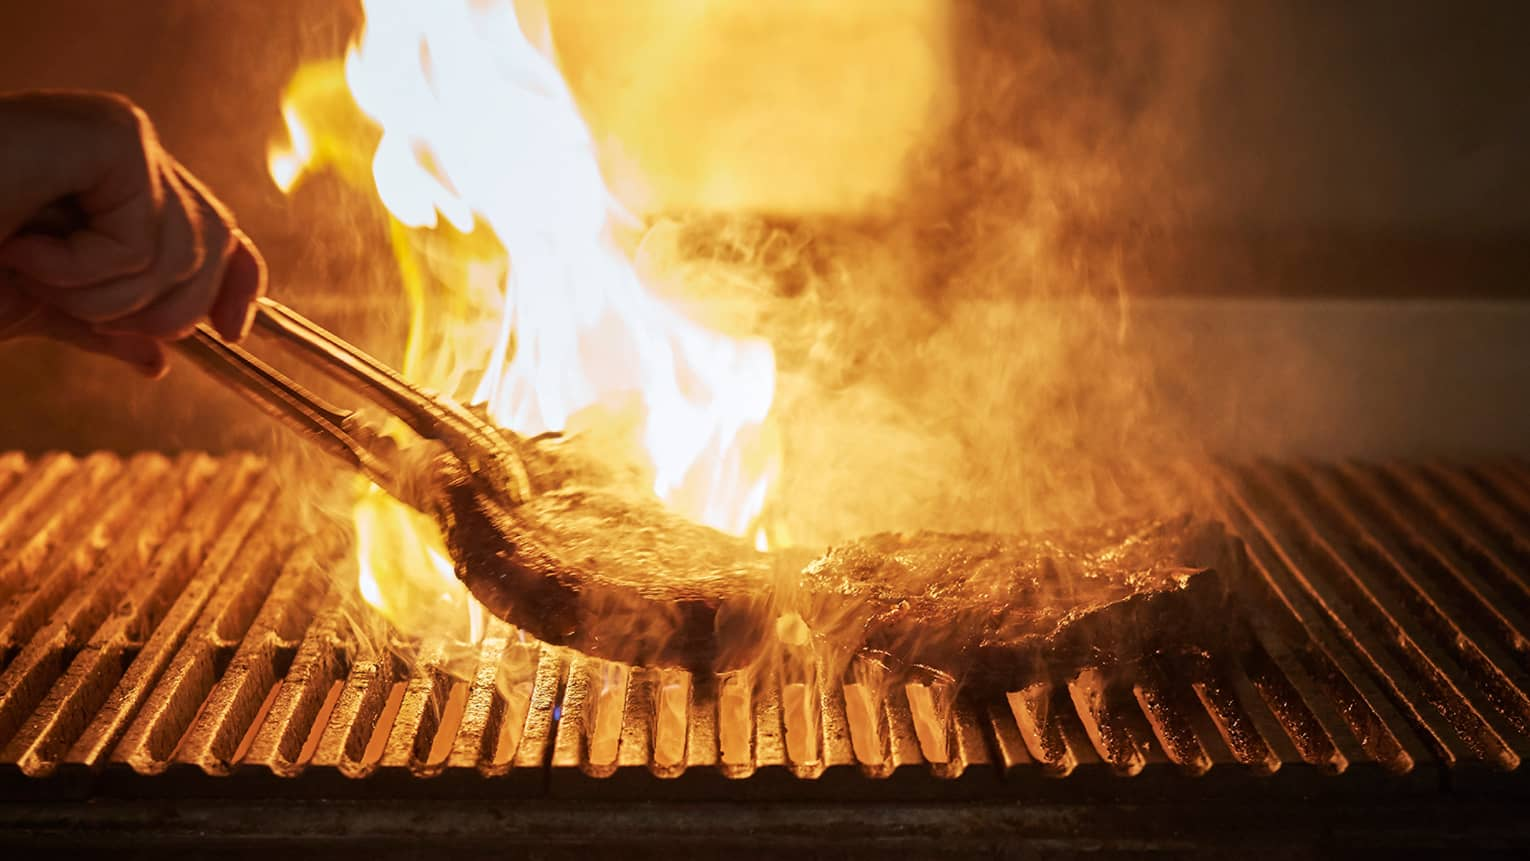 Fiery barbecue with silhouette of hand holding tongs, flipping large steak on grill